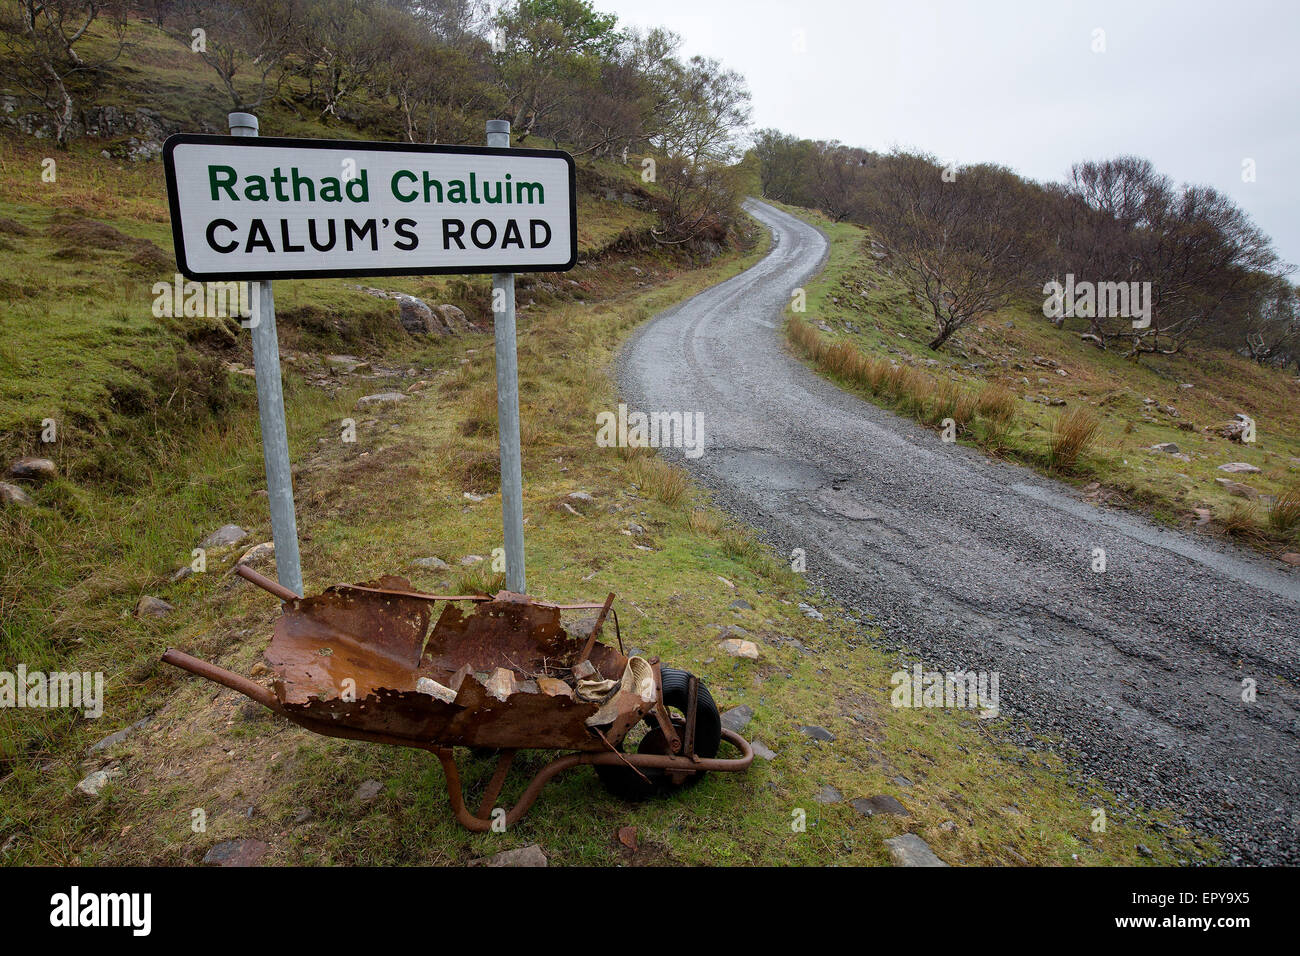 Calum's Road on the Isle of Raasay in the Inner Hebrides built by Calum MacLeod and his brother Charles. - Stock Image